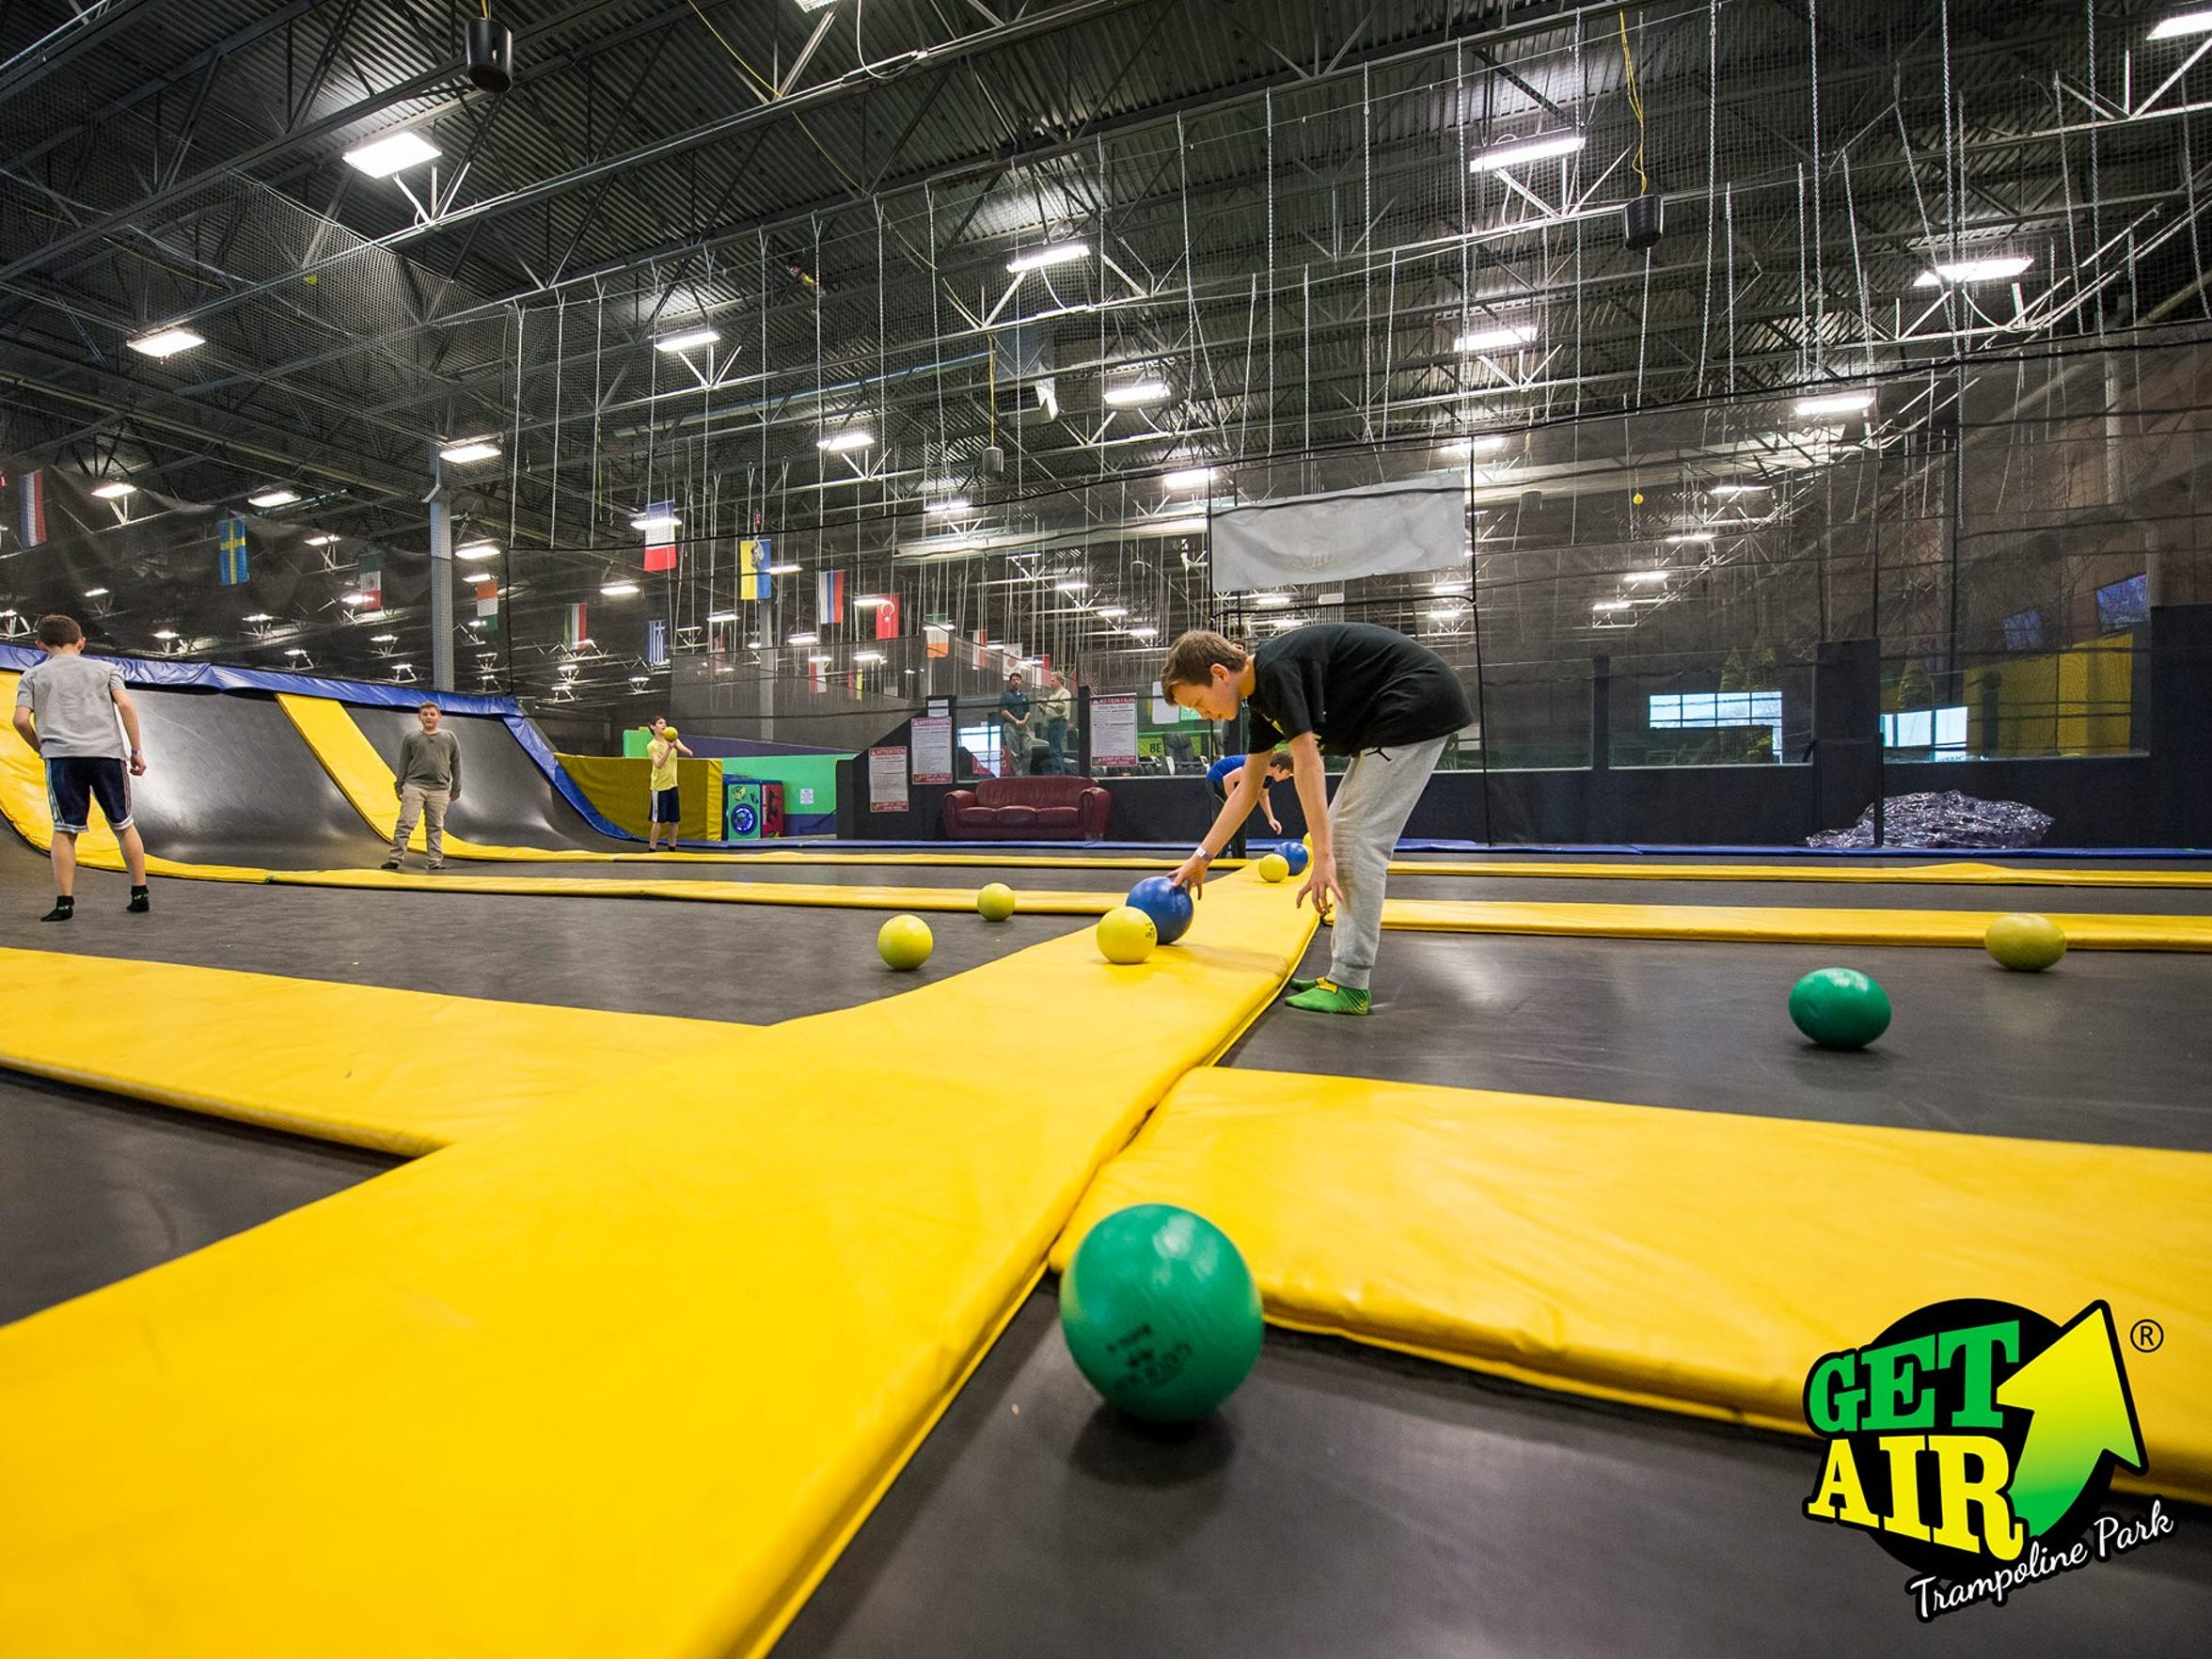 Corpus Christi's premier indoor trampoline park got a 10,000-square-foot upgrade in June 2017.